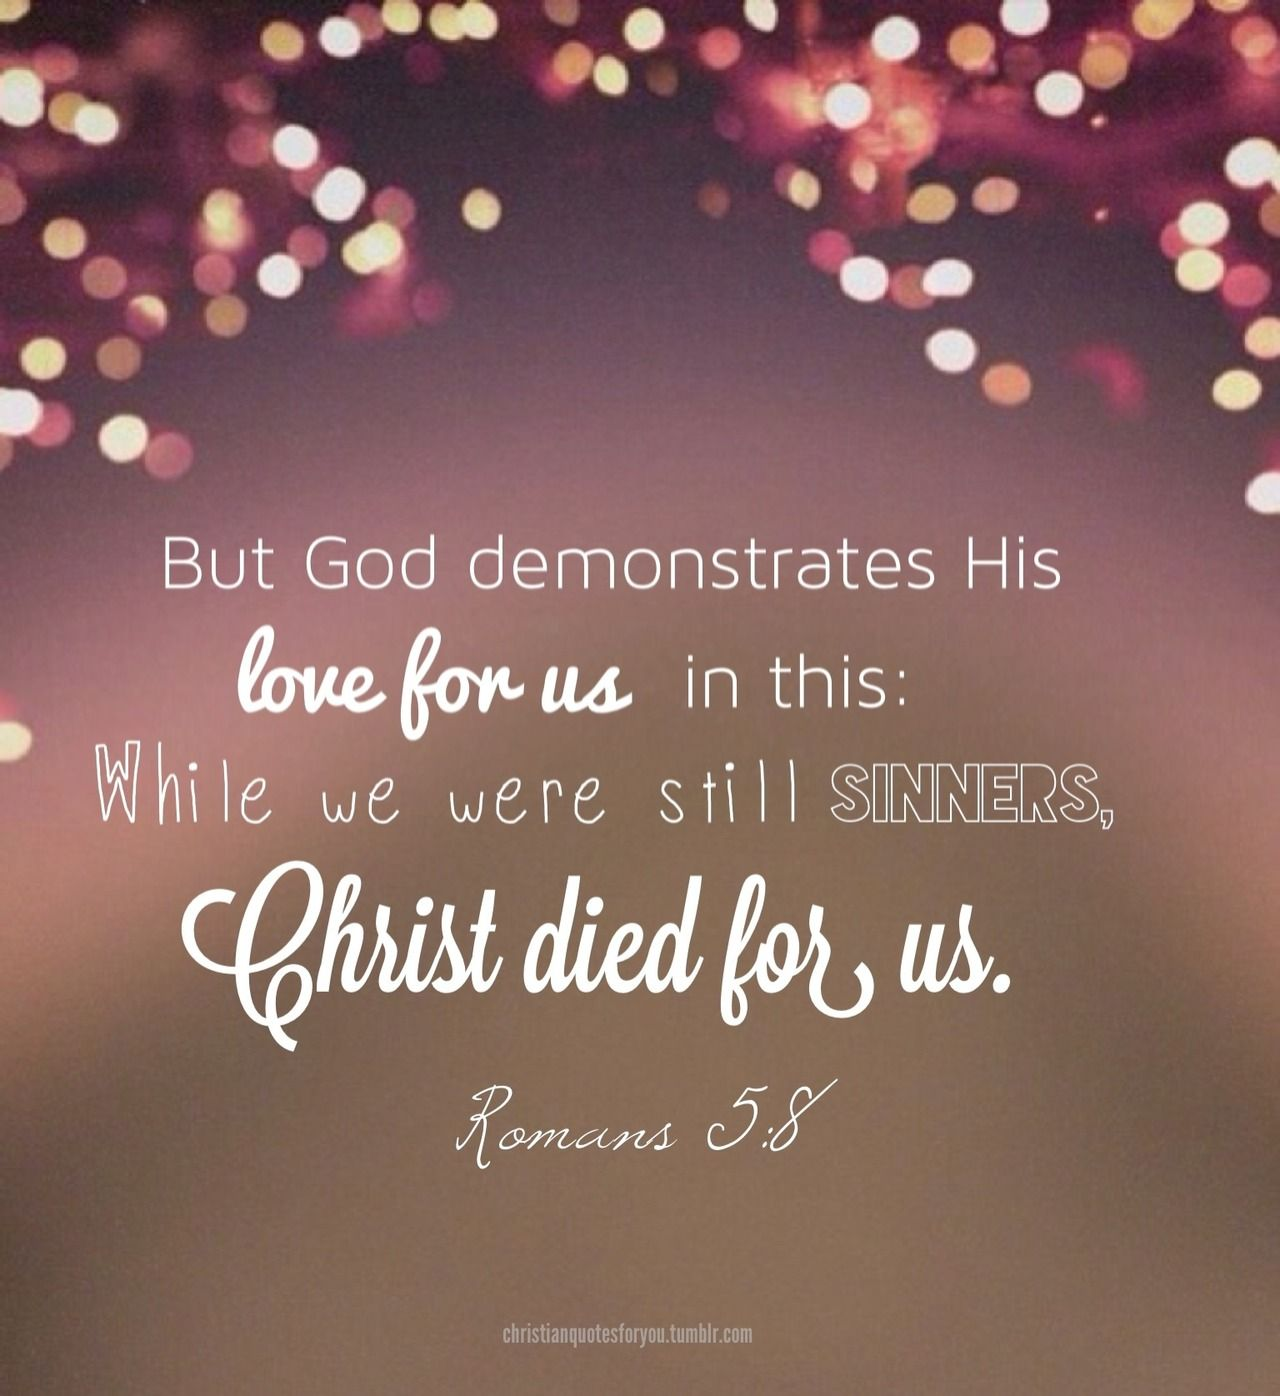 Iphone wallpaper tumblr quotes love - Christian Iphone Wallpaper